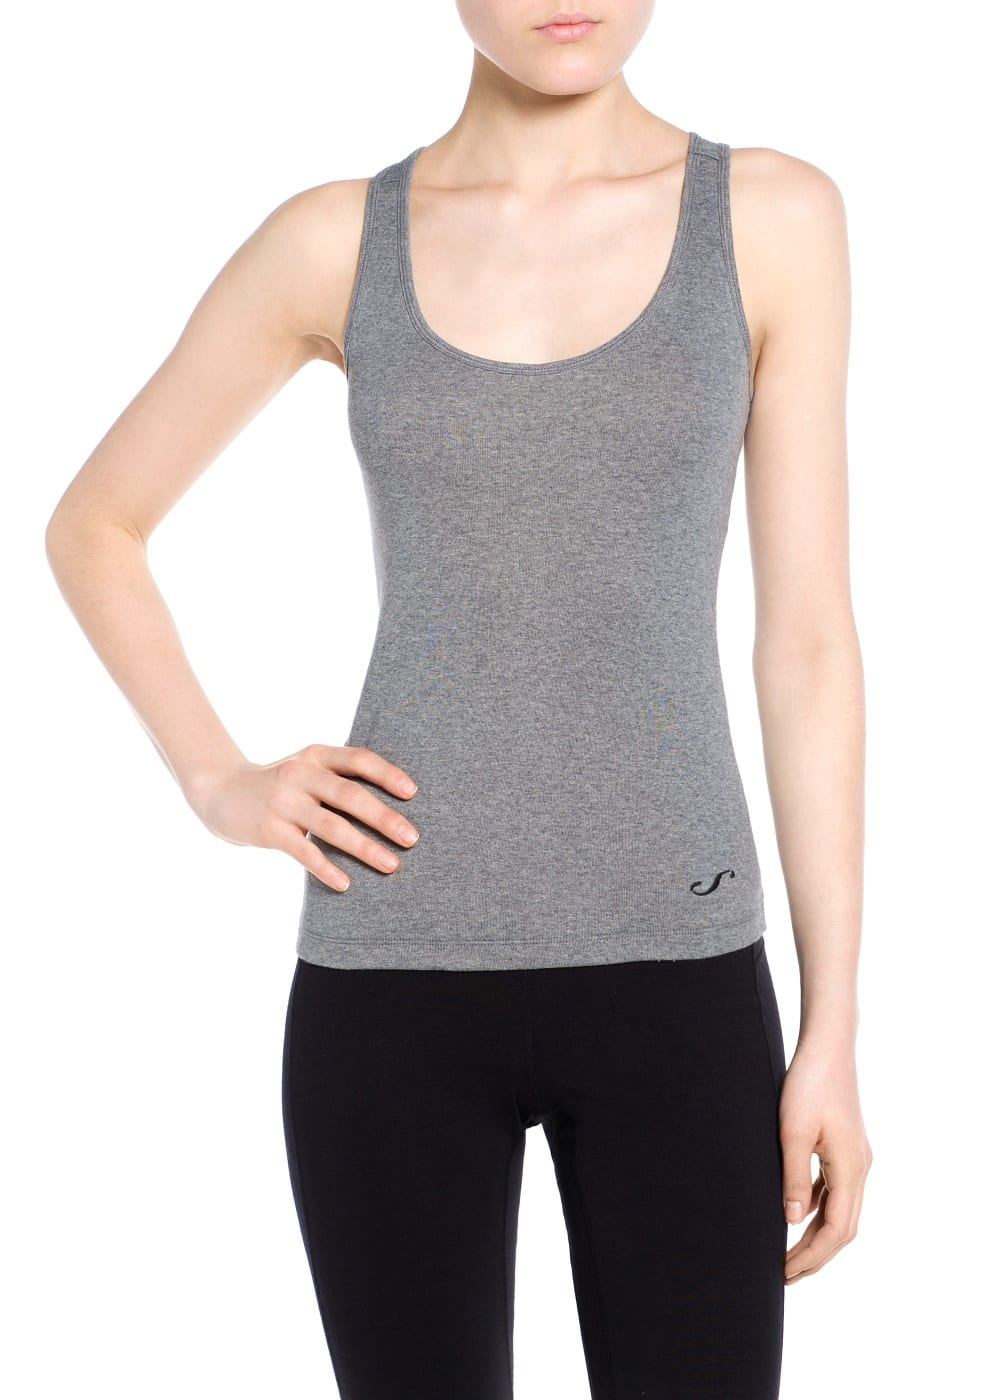 Yoga - Weiches Sport-Shirt